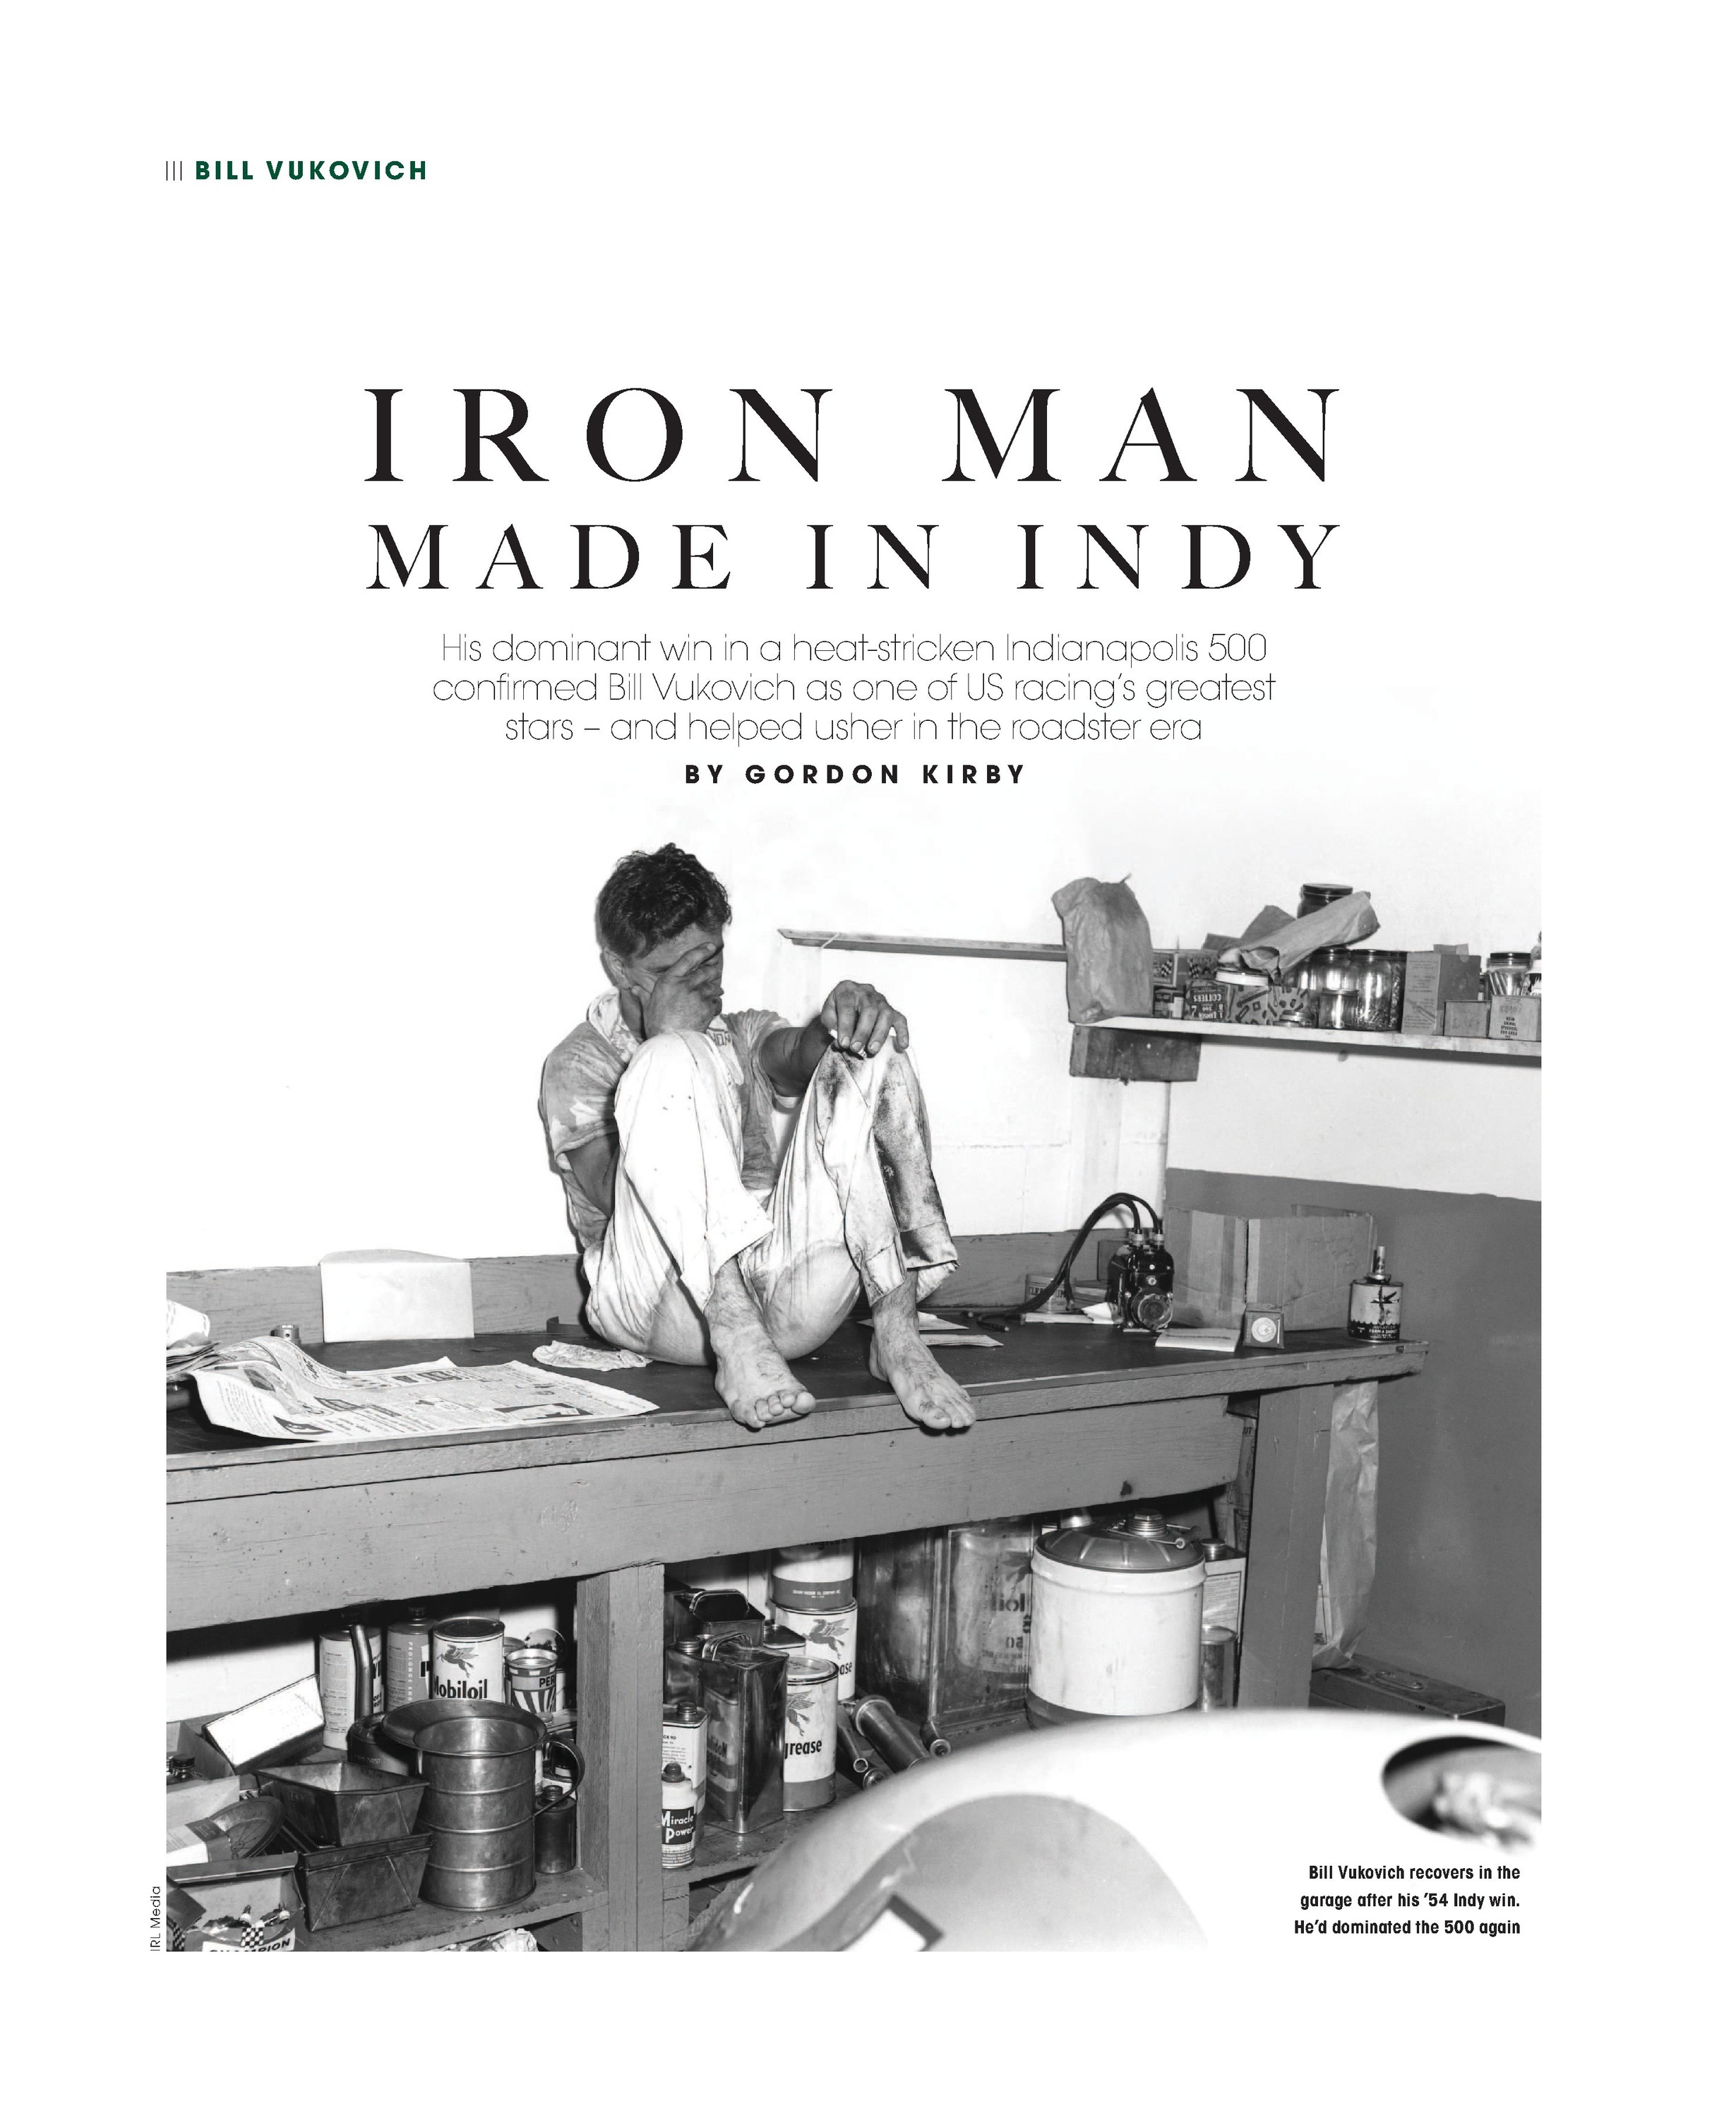 Iron man made in Indy image